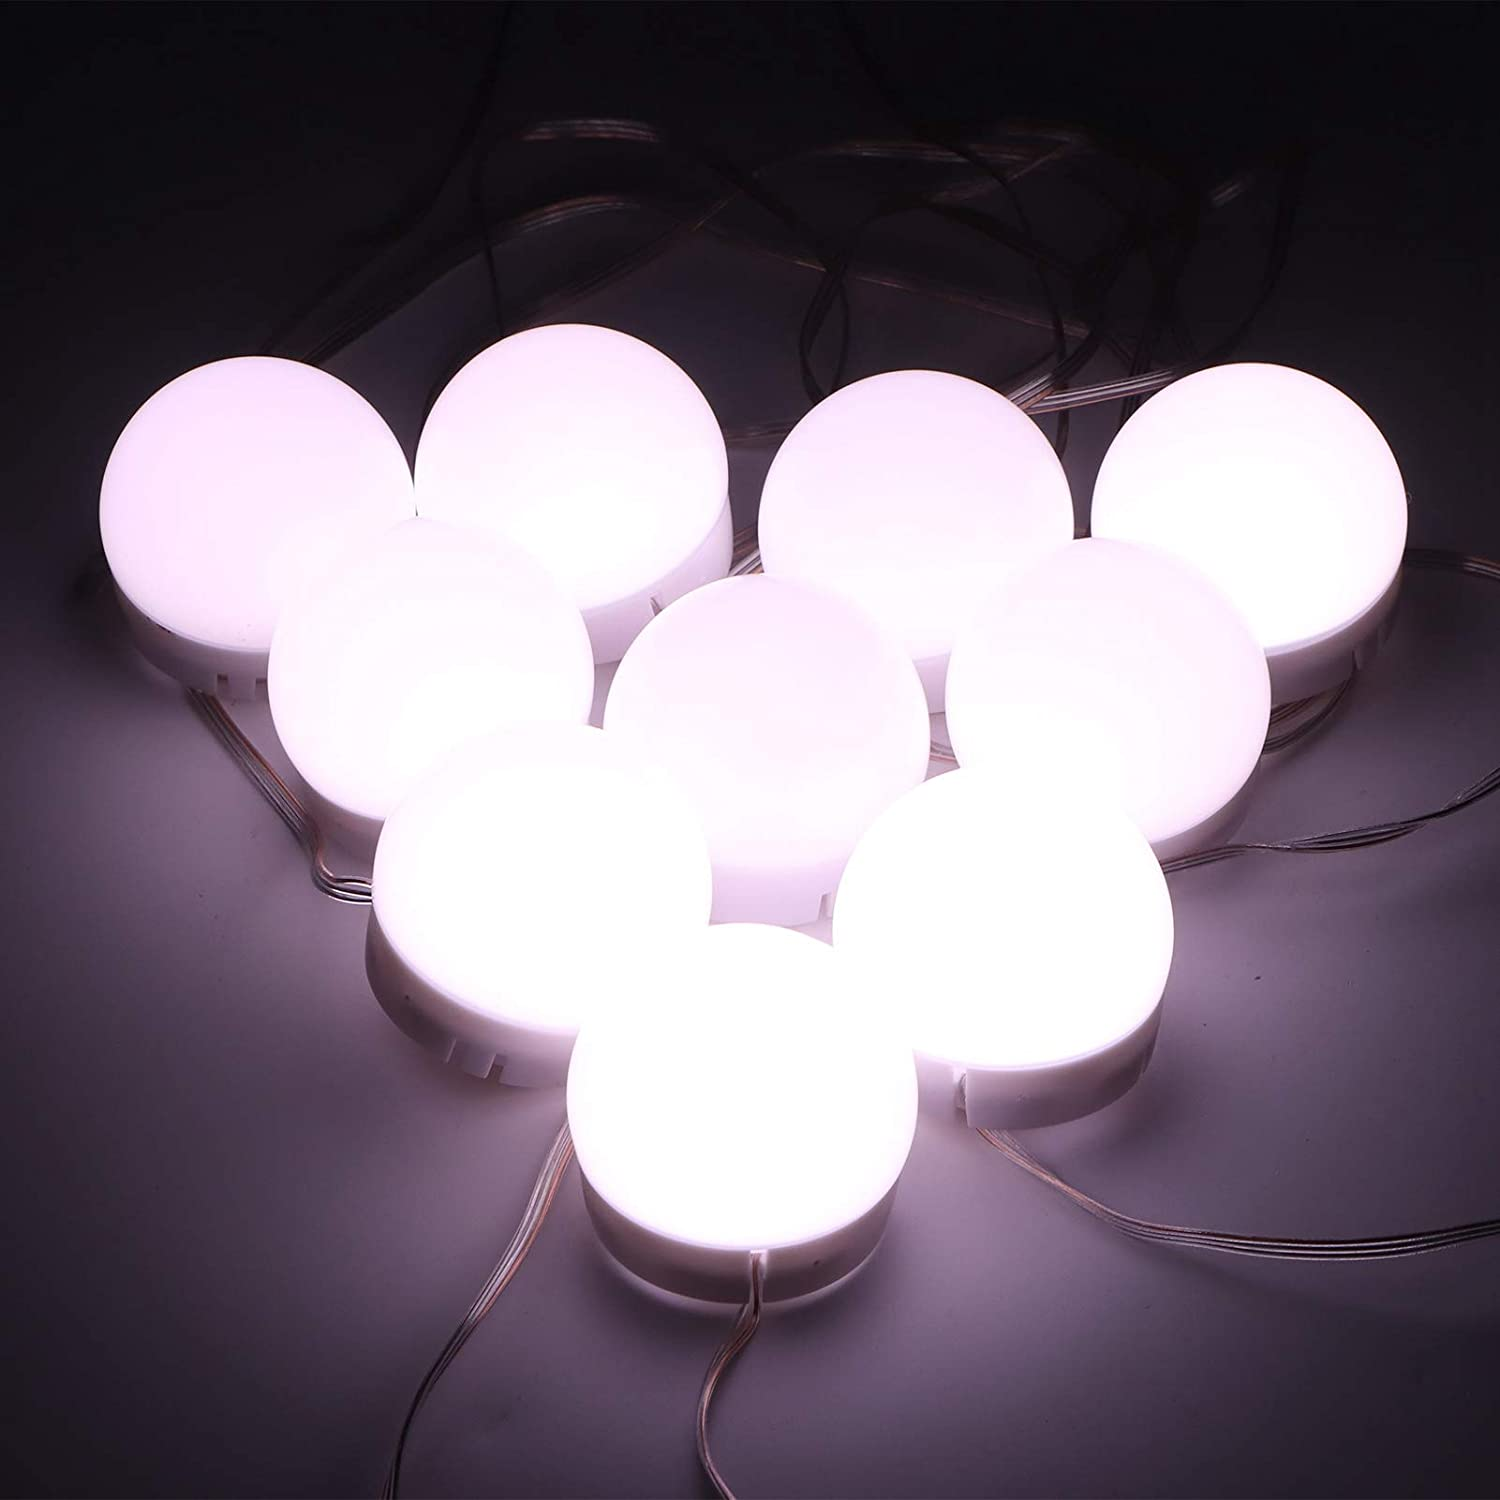 Cosmetic New arrival Mirror Bulb Safety and trust Adjustable Vanity Roo Dressing Lights for